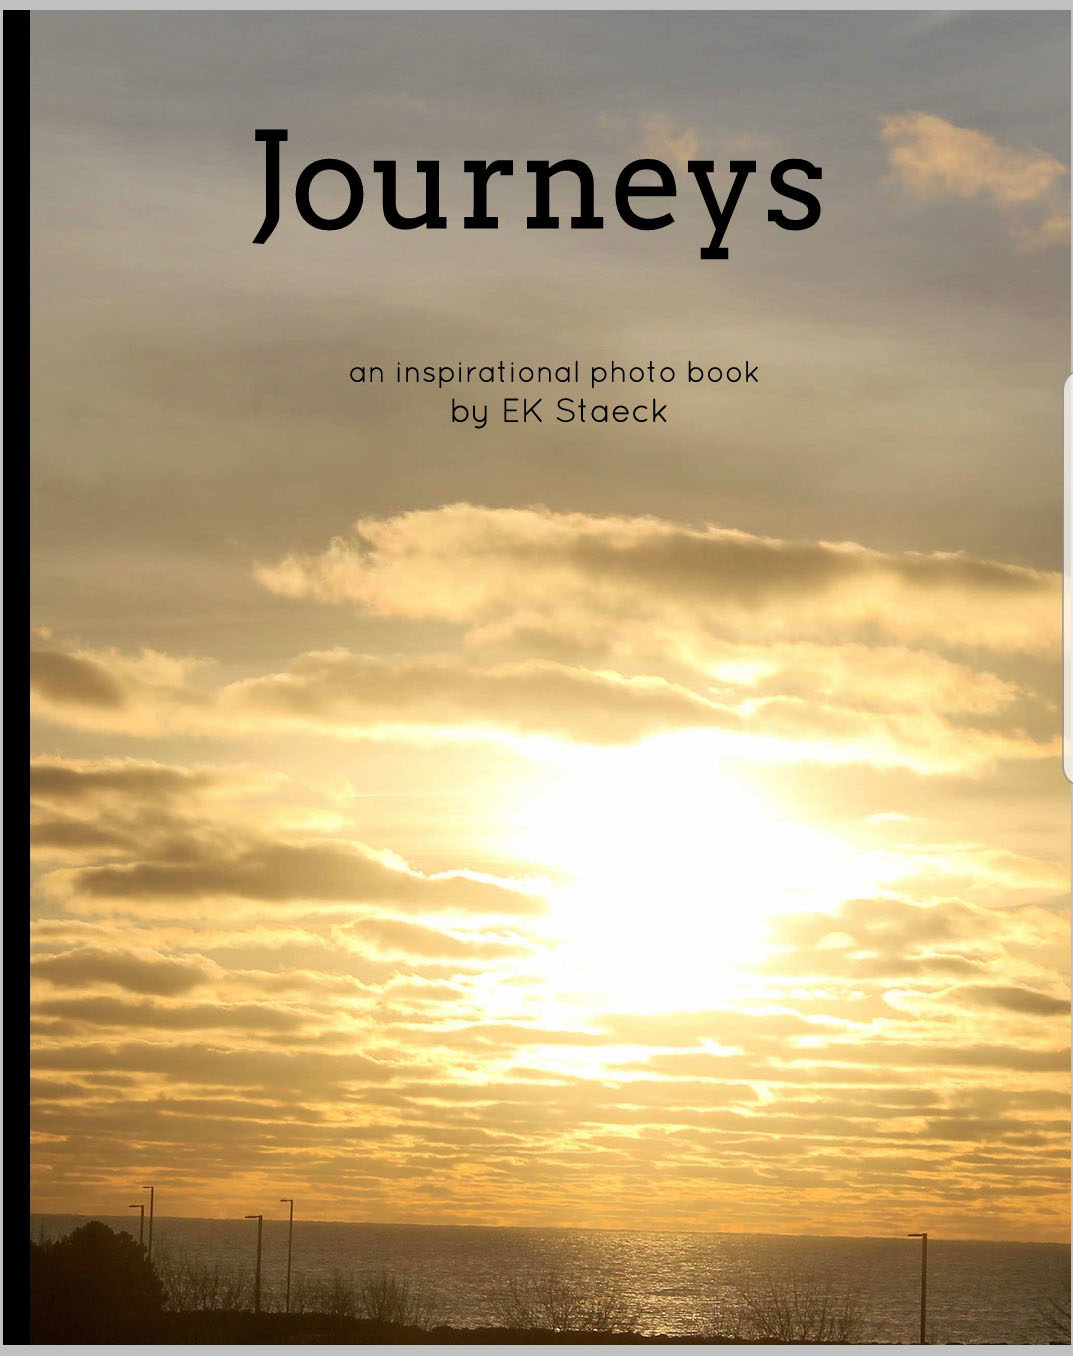 Journeys - an inspirational photo book